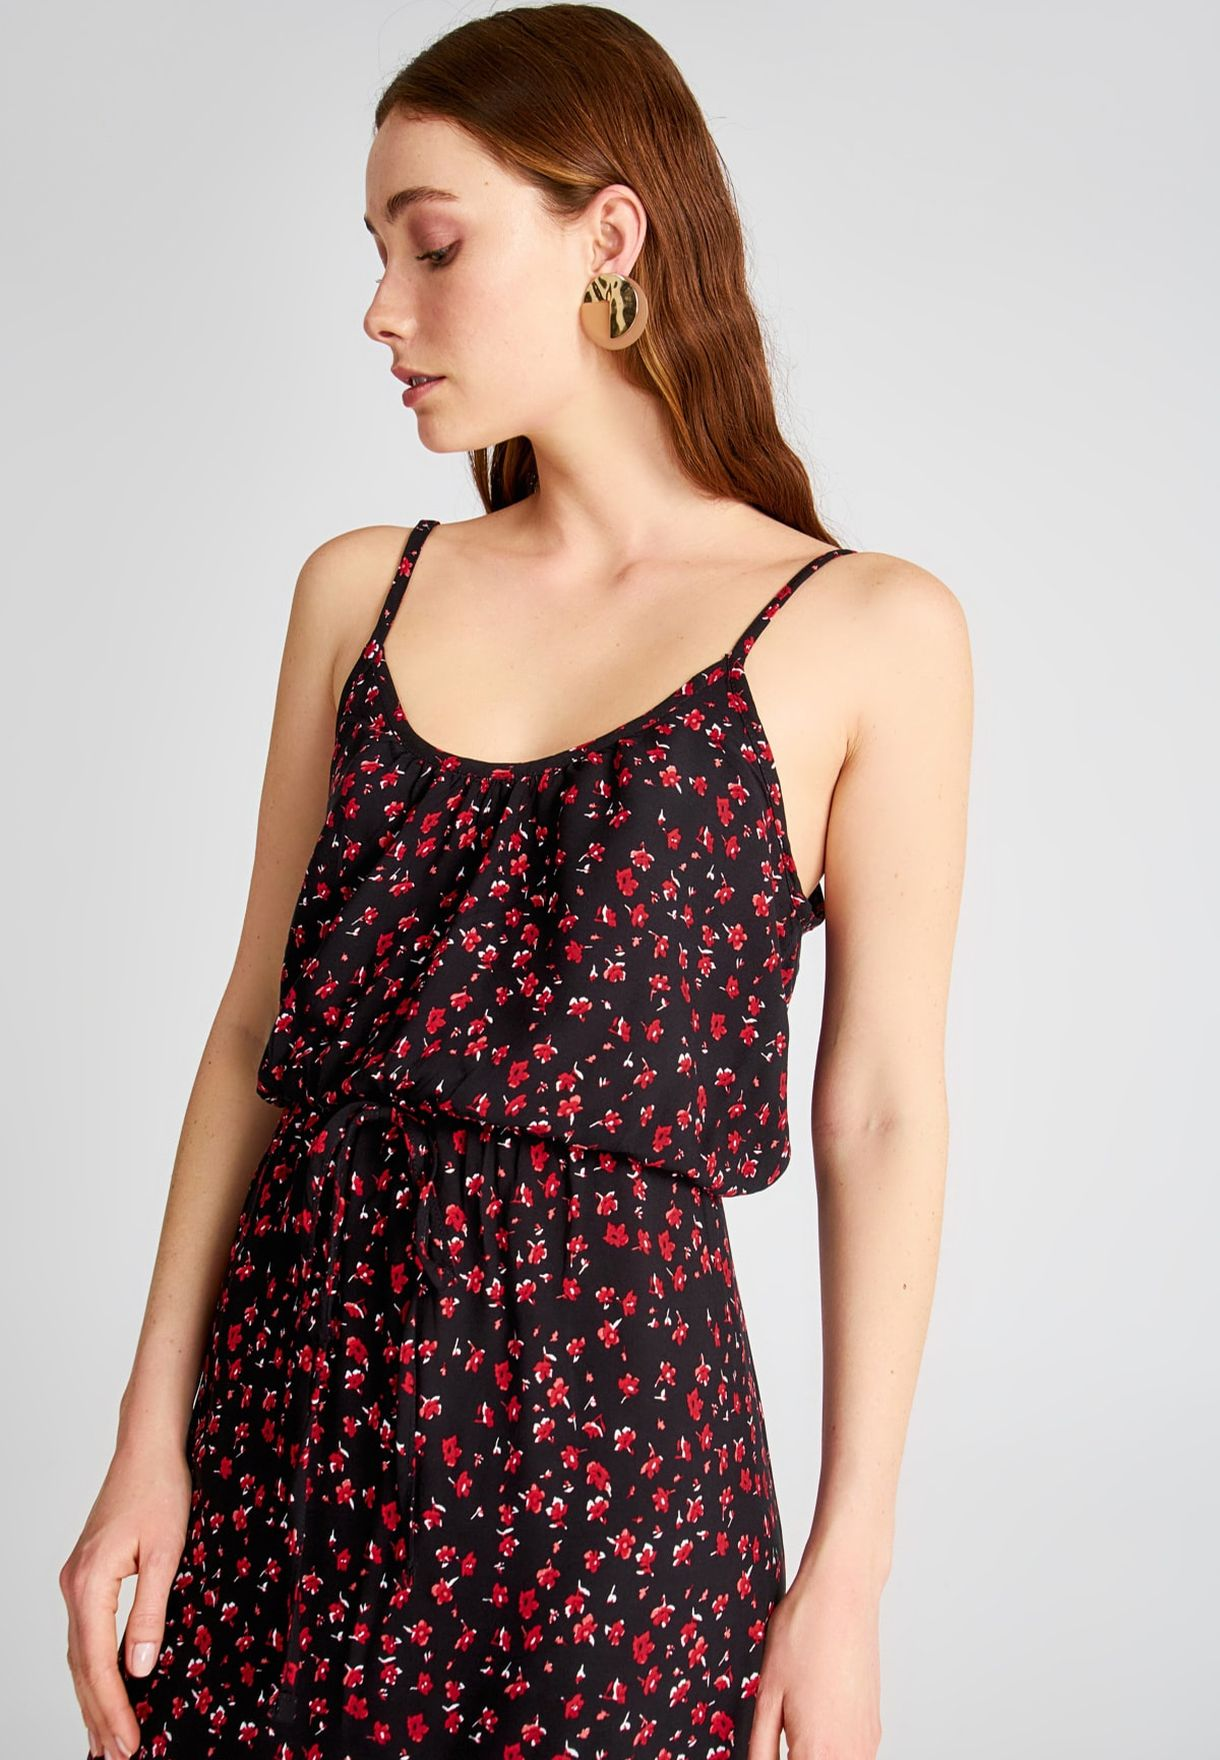 Trendyol Cami Strap Printed Dress - Women Clothing wMUcT